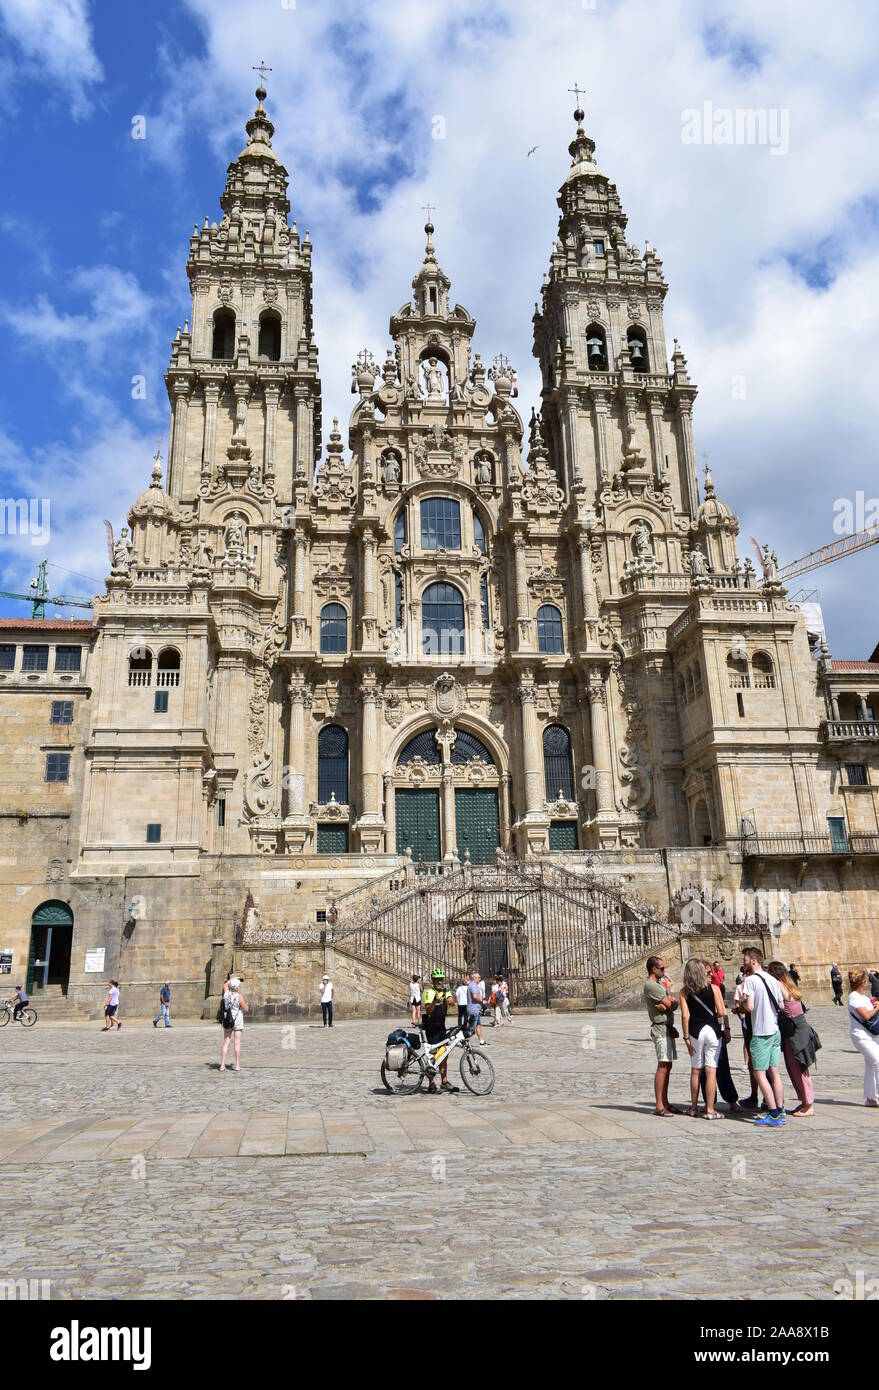 Santiago de Compostela, Spain. August 4, 2019. Cathedral with pilgrims taking pictures at final stage of Camino de Santiago. Plaza del Obradoiro. Stock Photo